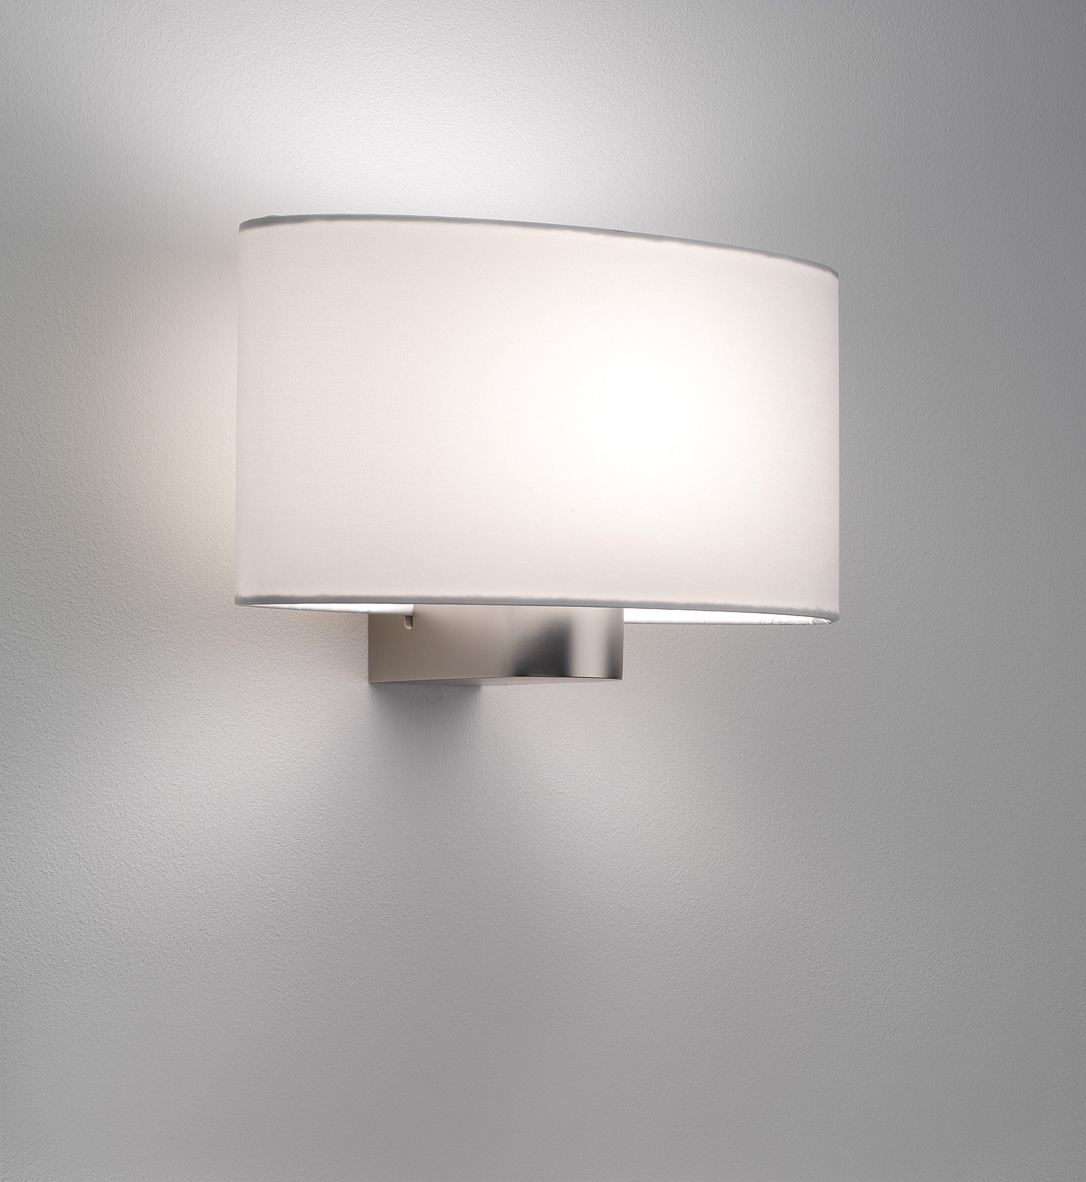 Astro Napoli 0881 Oval Lampshade Wall Light 60W E27 Matt